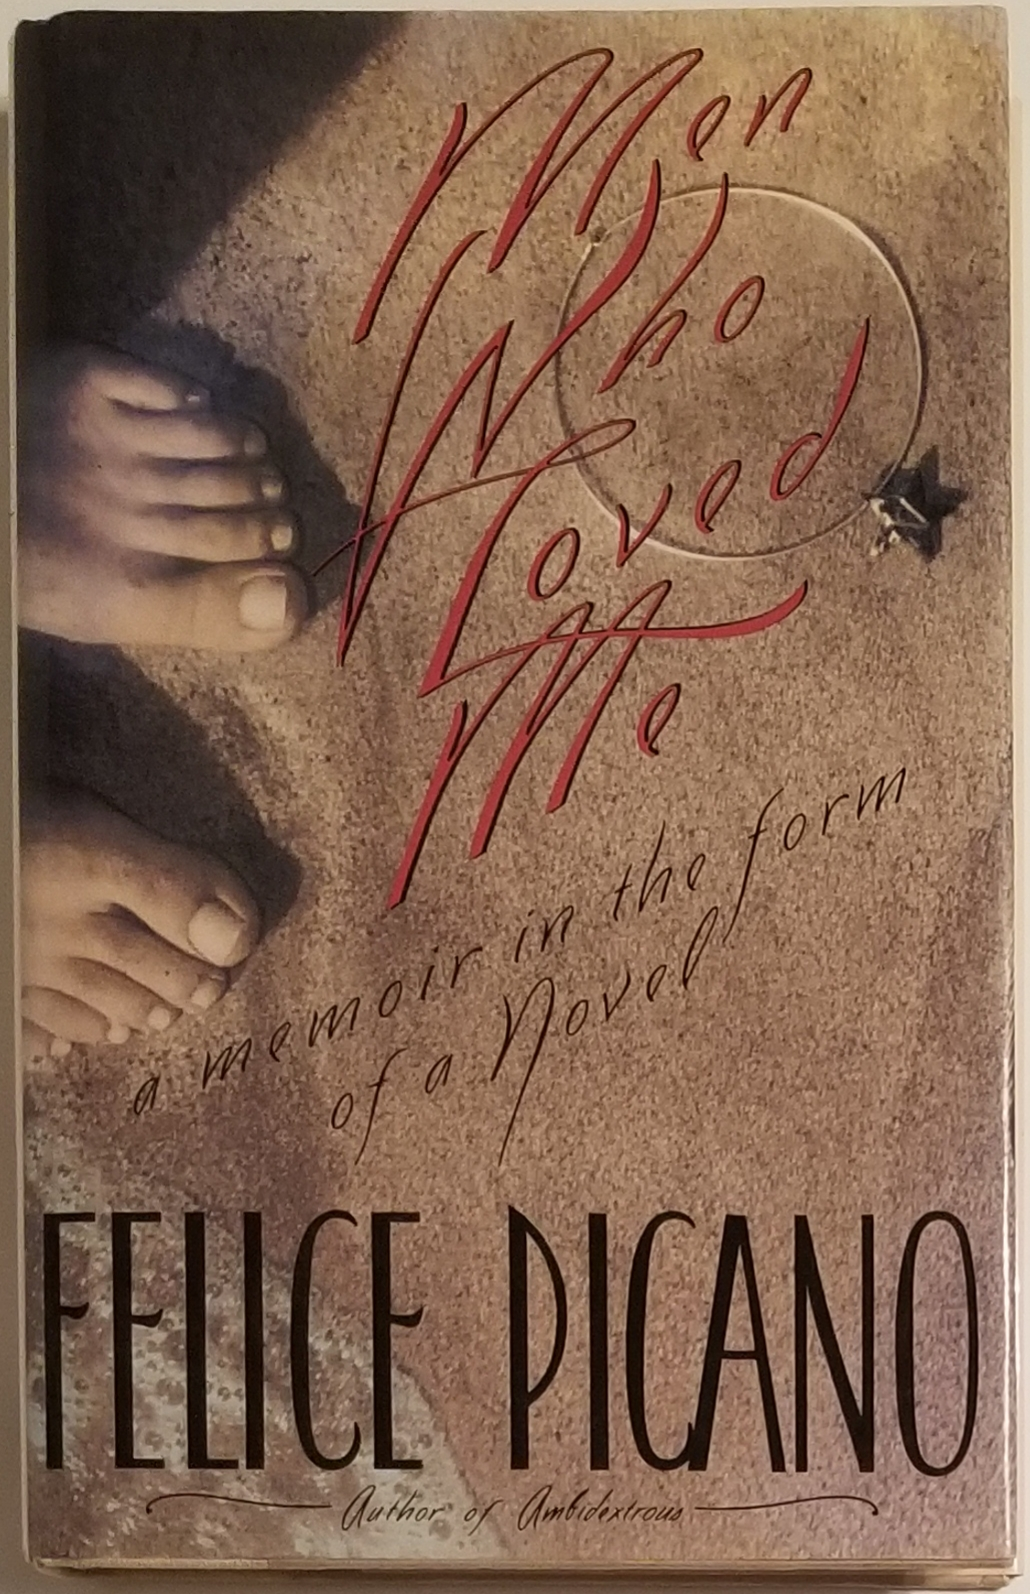 MEN WHO LOVED ME. A Memoir in the Form of a Novel. Felice Picano.